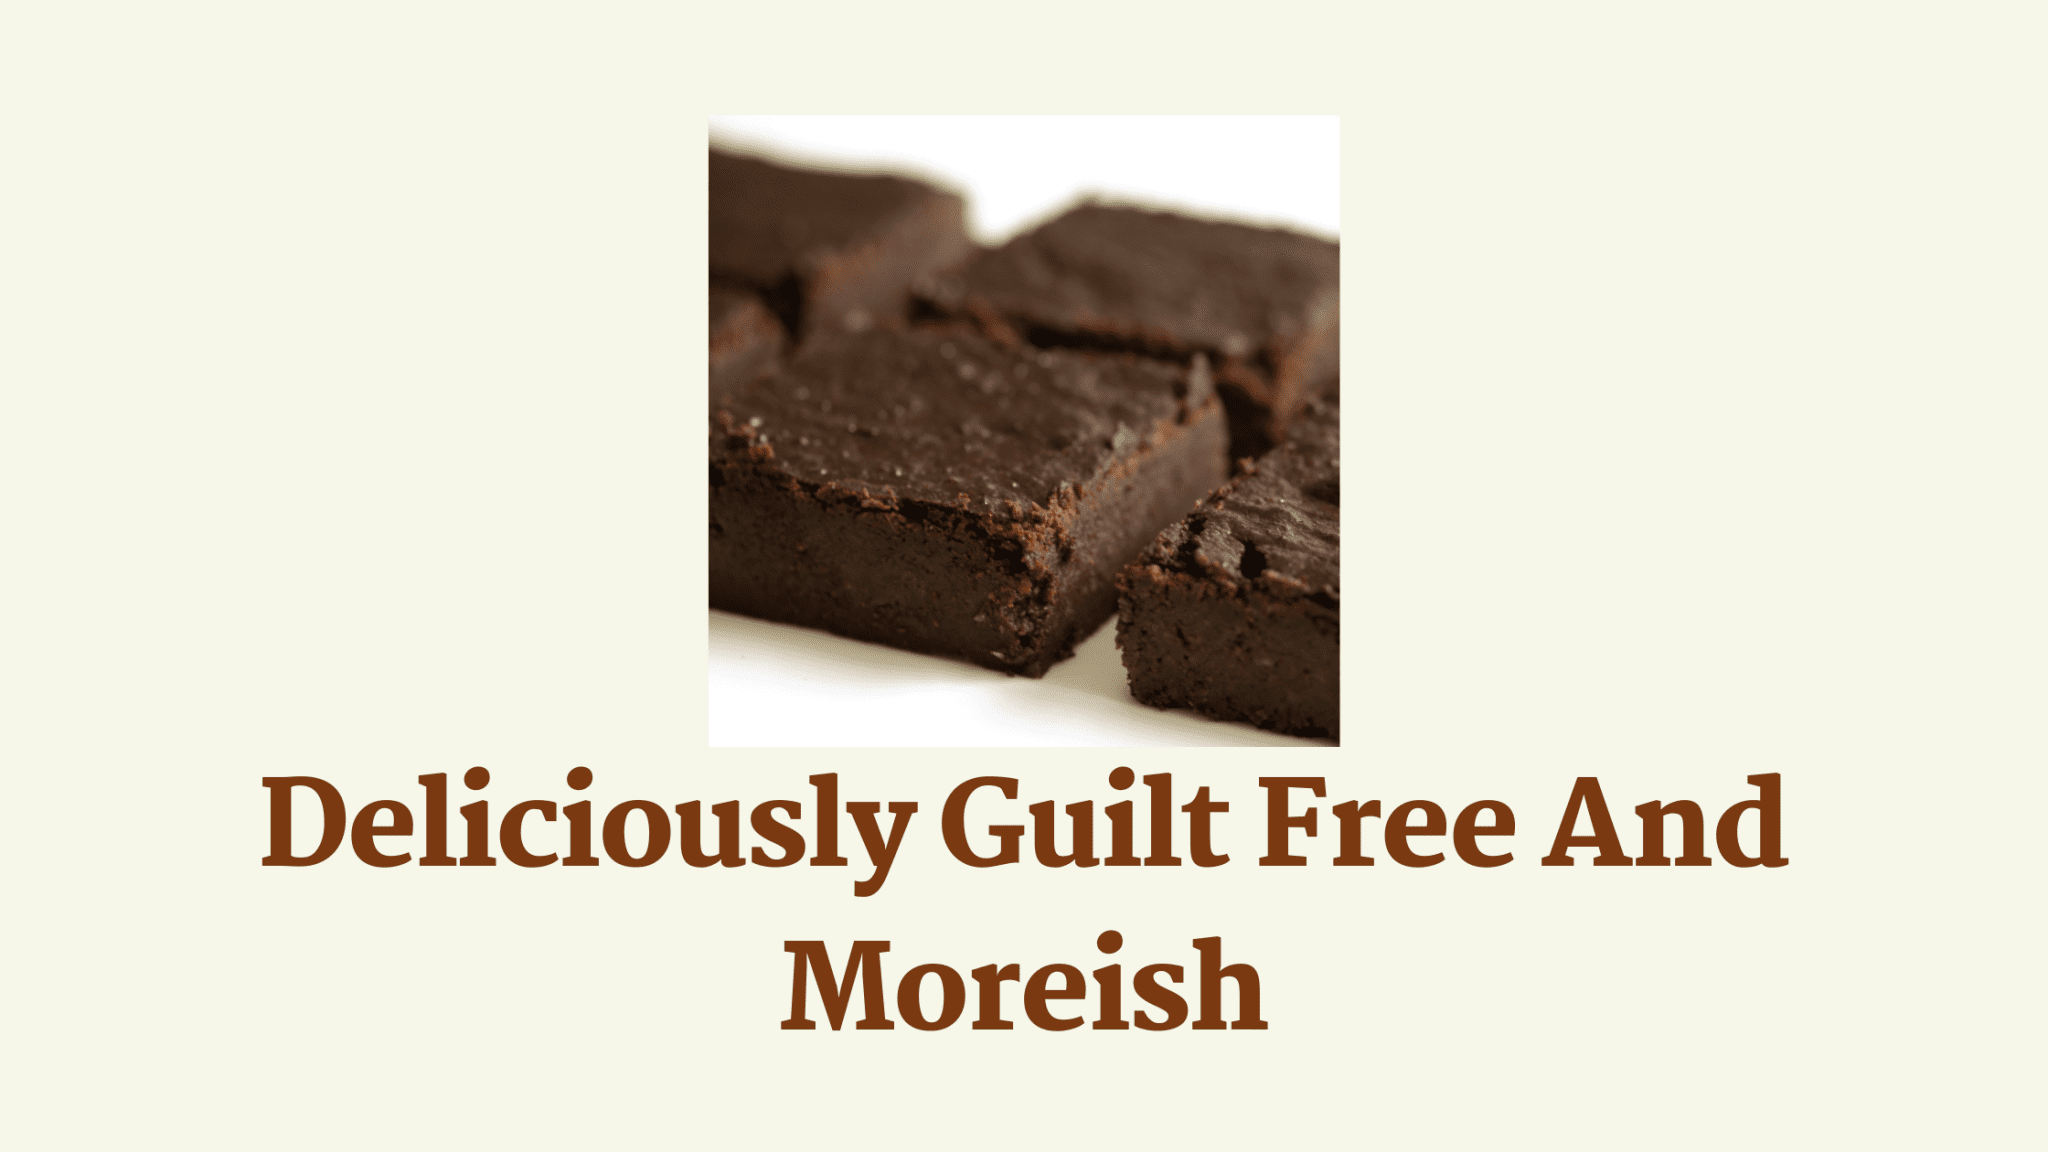 Deliciously Guilt Free And Moreish